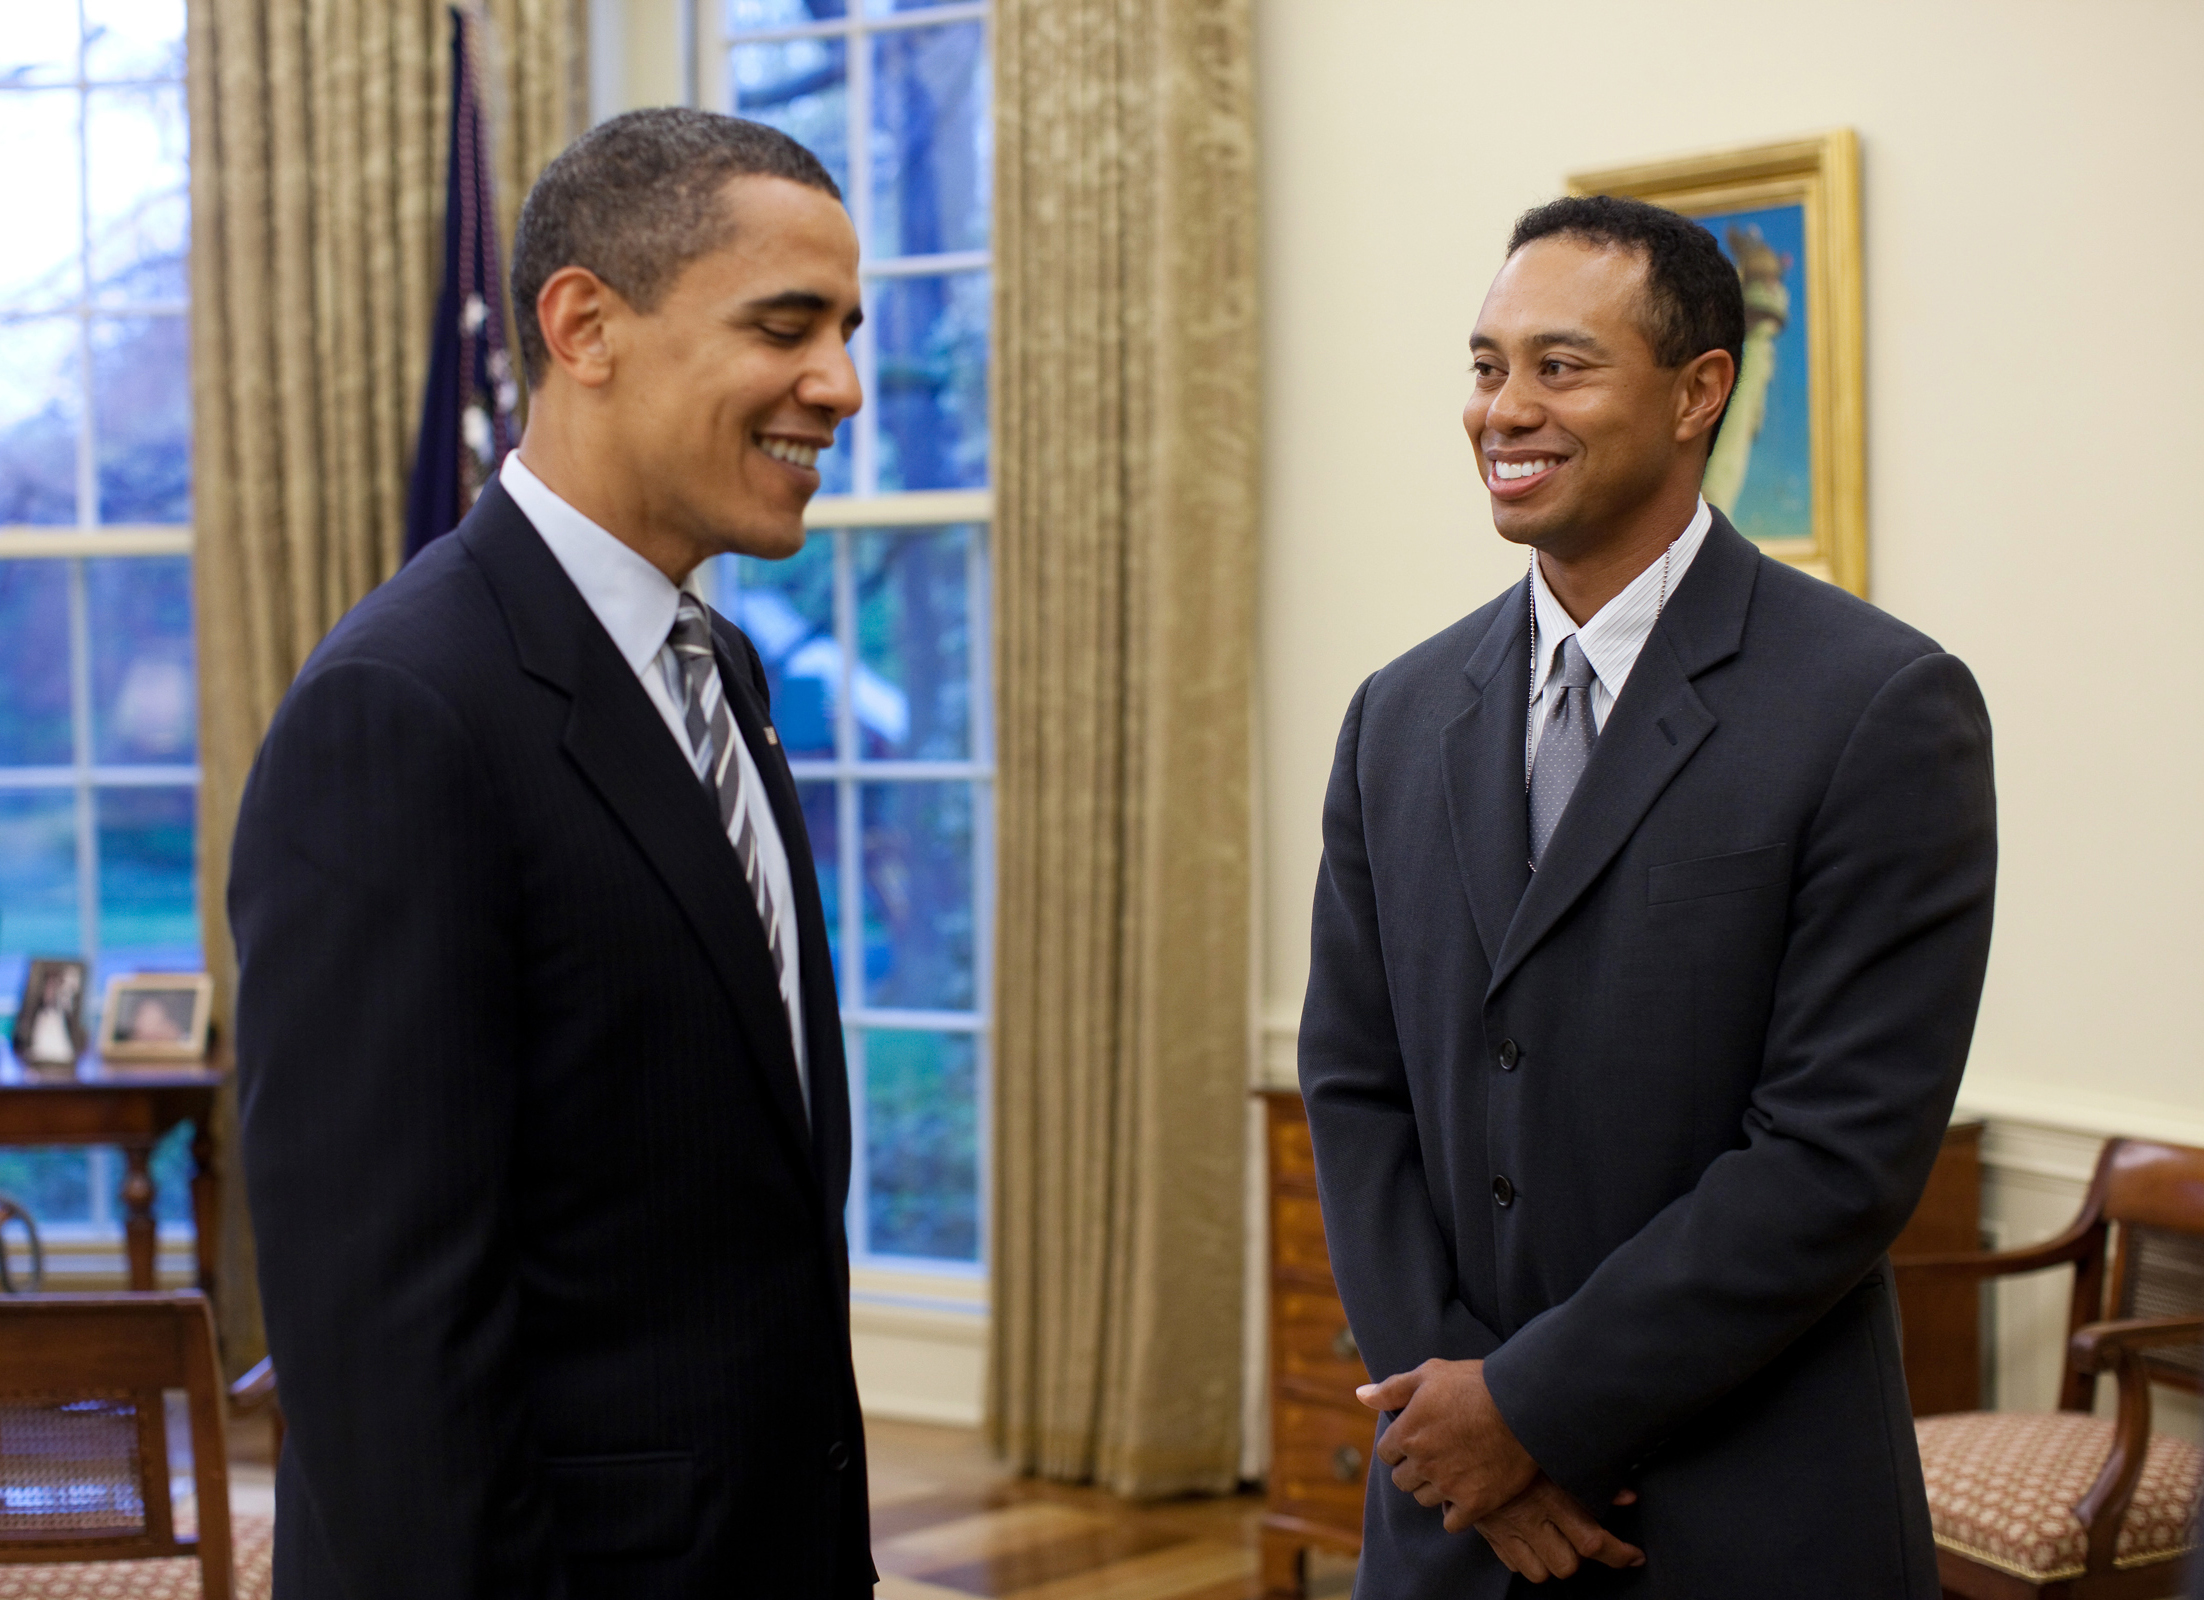 Woods meets with United States President Barack Obama in the Oval Office. (April 2009)